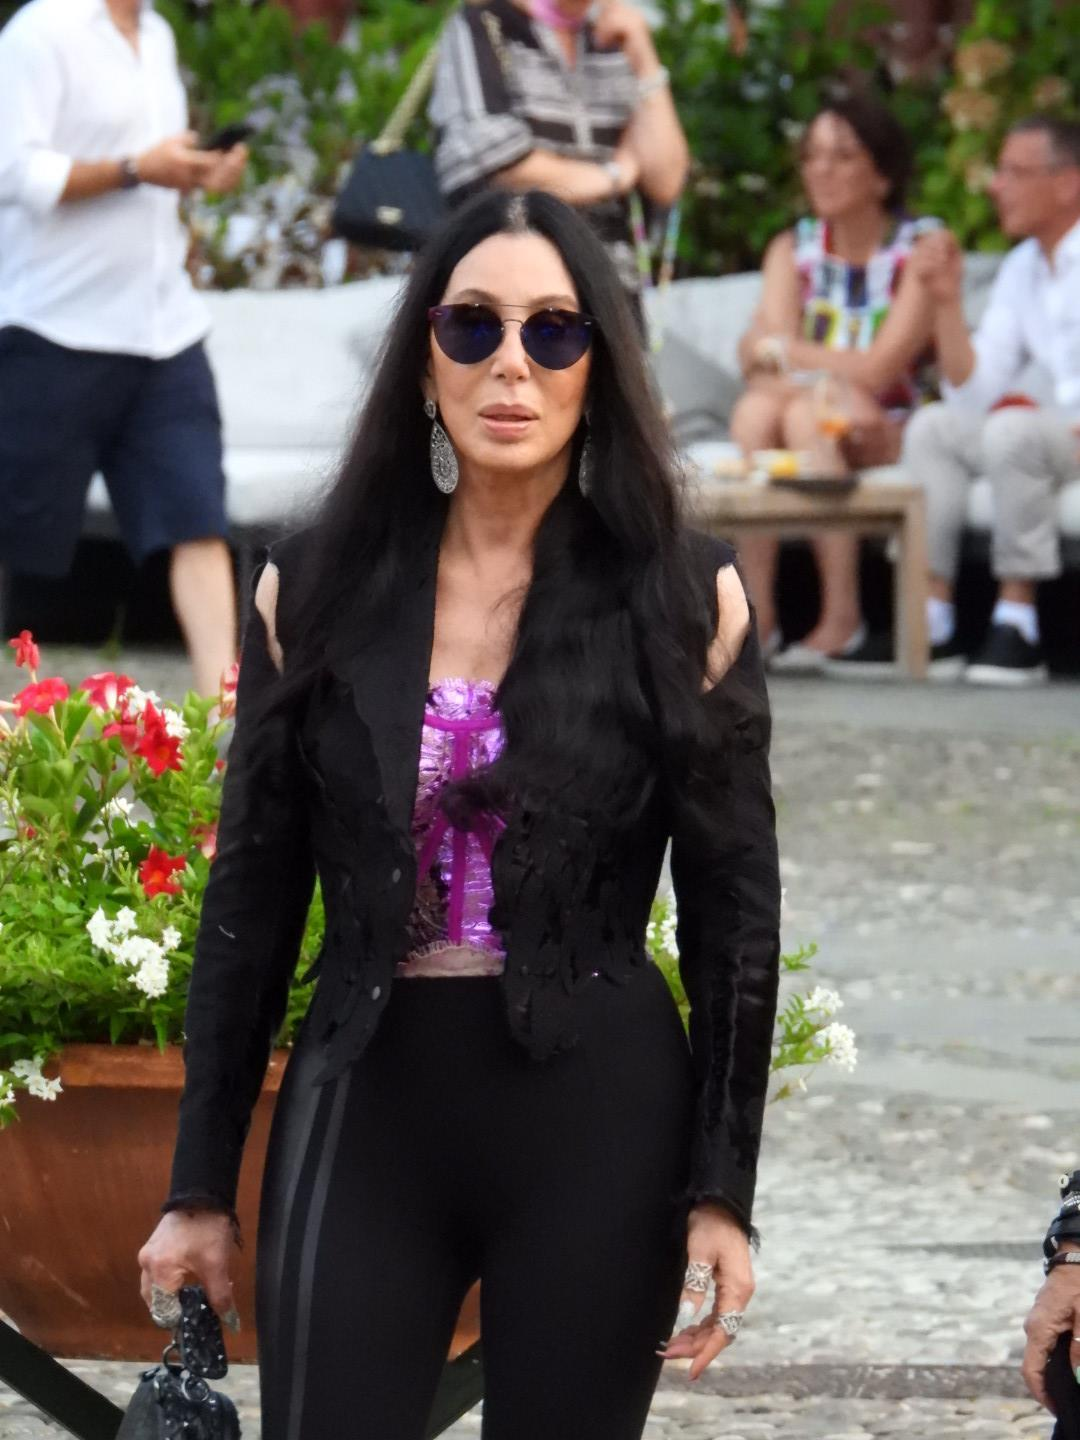 Cher is seen out for a walk with friends in the Italian resort of Portofino